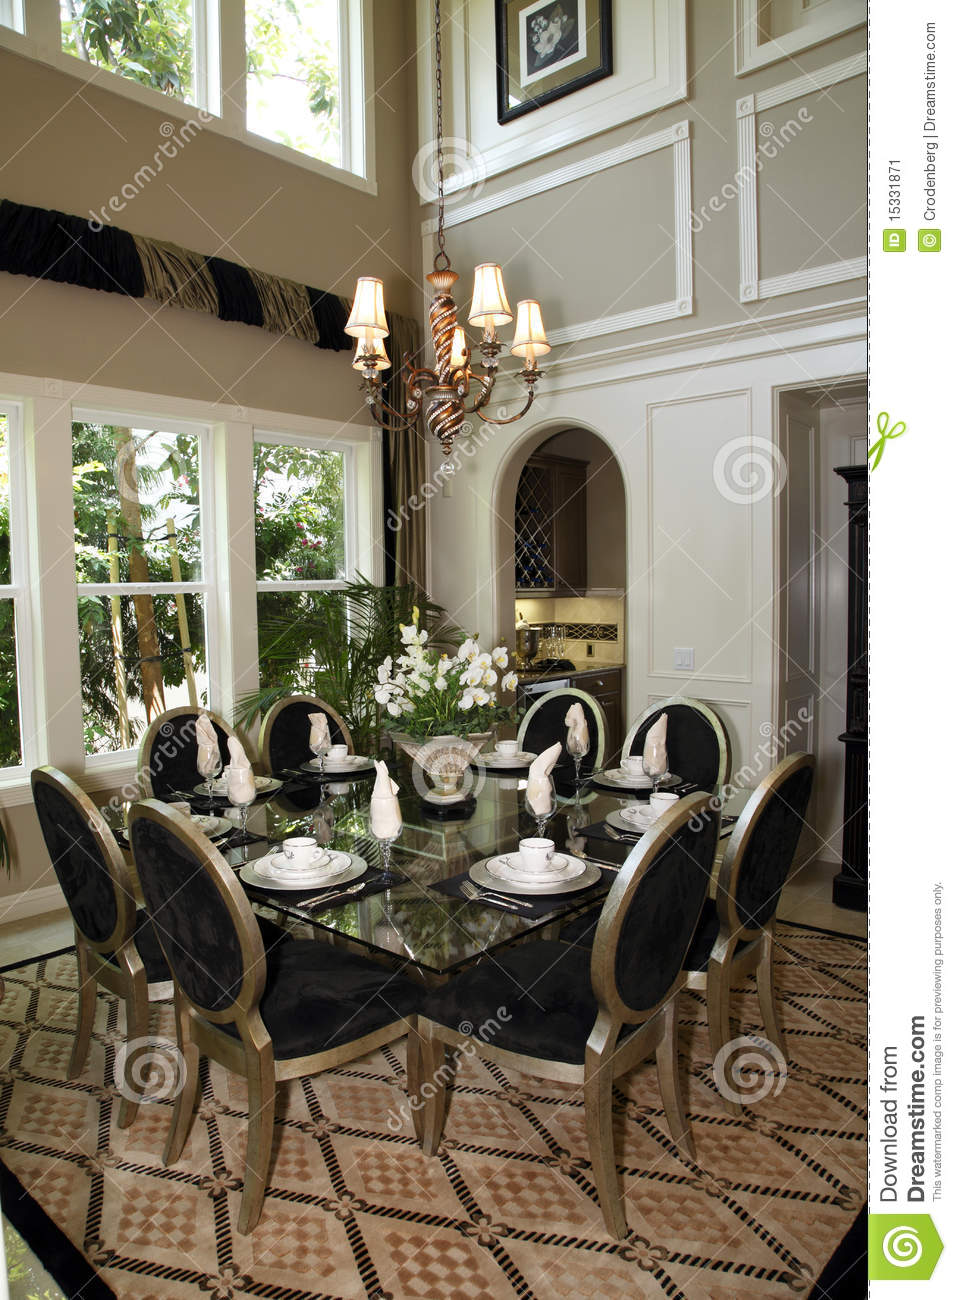 Luxury Home Dining Room Stock Image Image 15331871